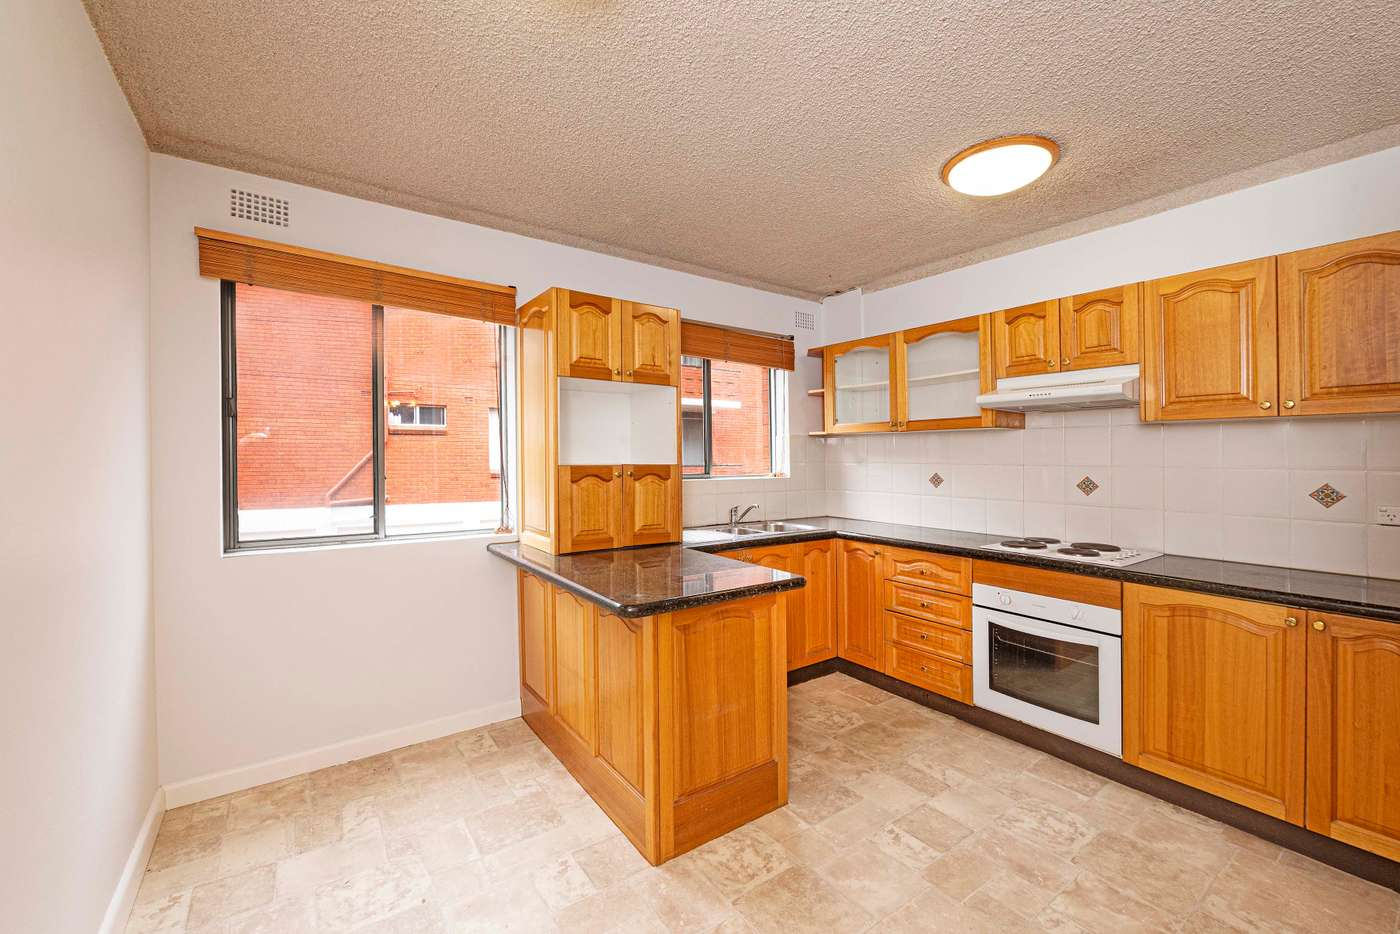 Main view of Homely apartment listing, 1/22 Villiers Street, Kensington NSW 2033